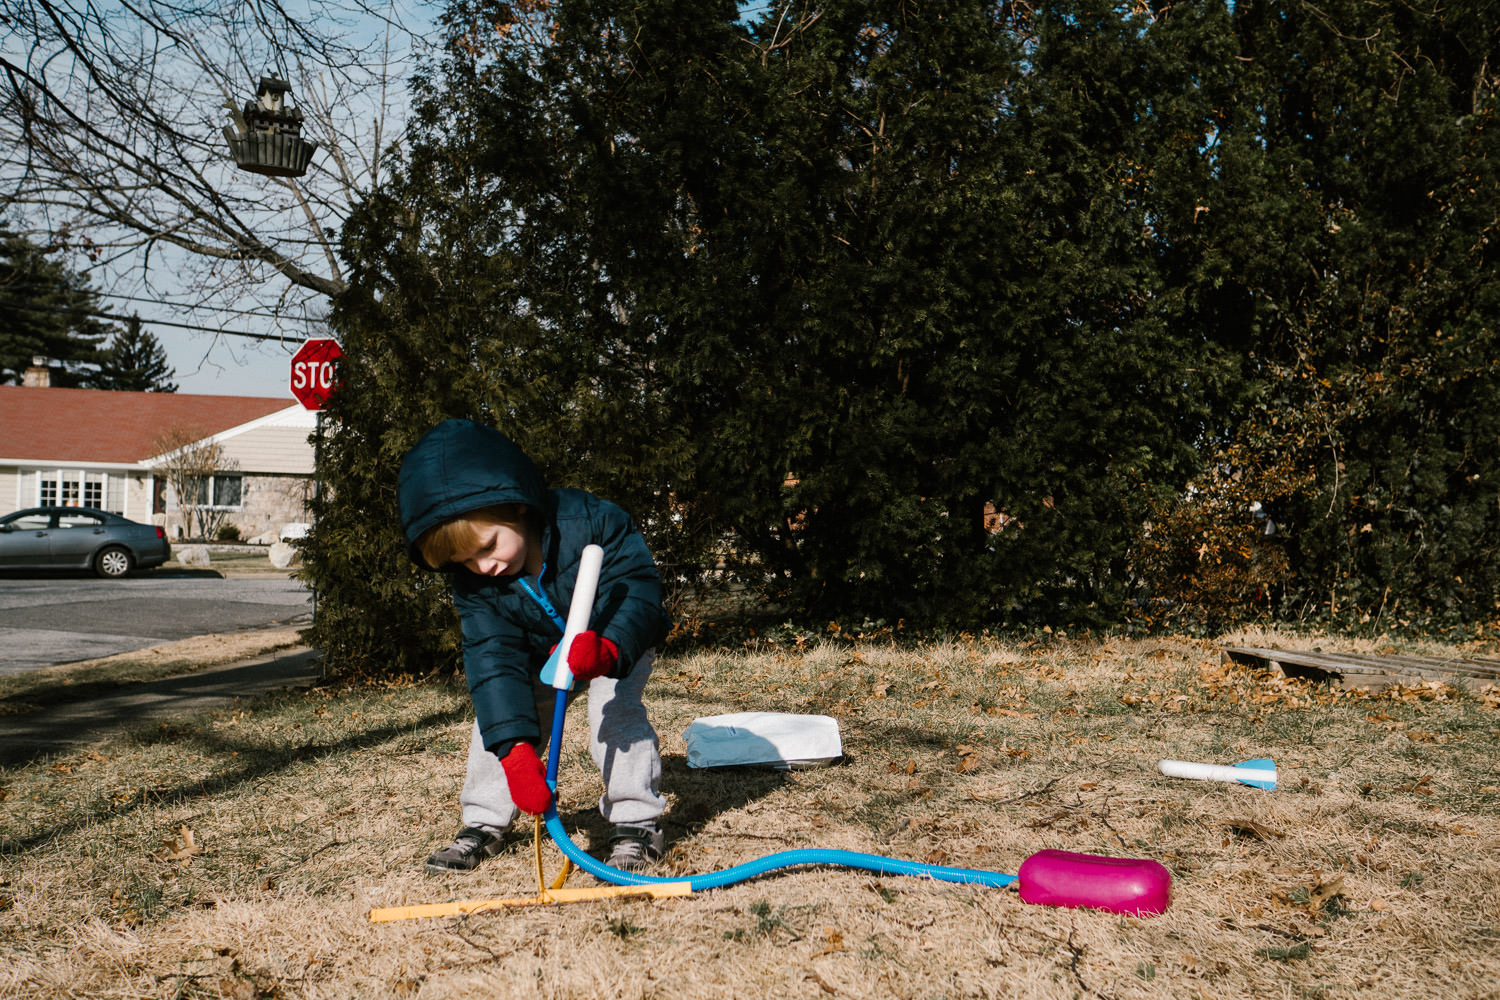 A little boy plays with a stomp rocket in his front yard.